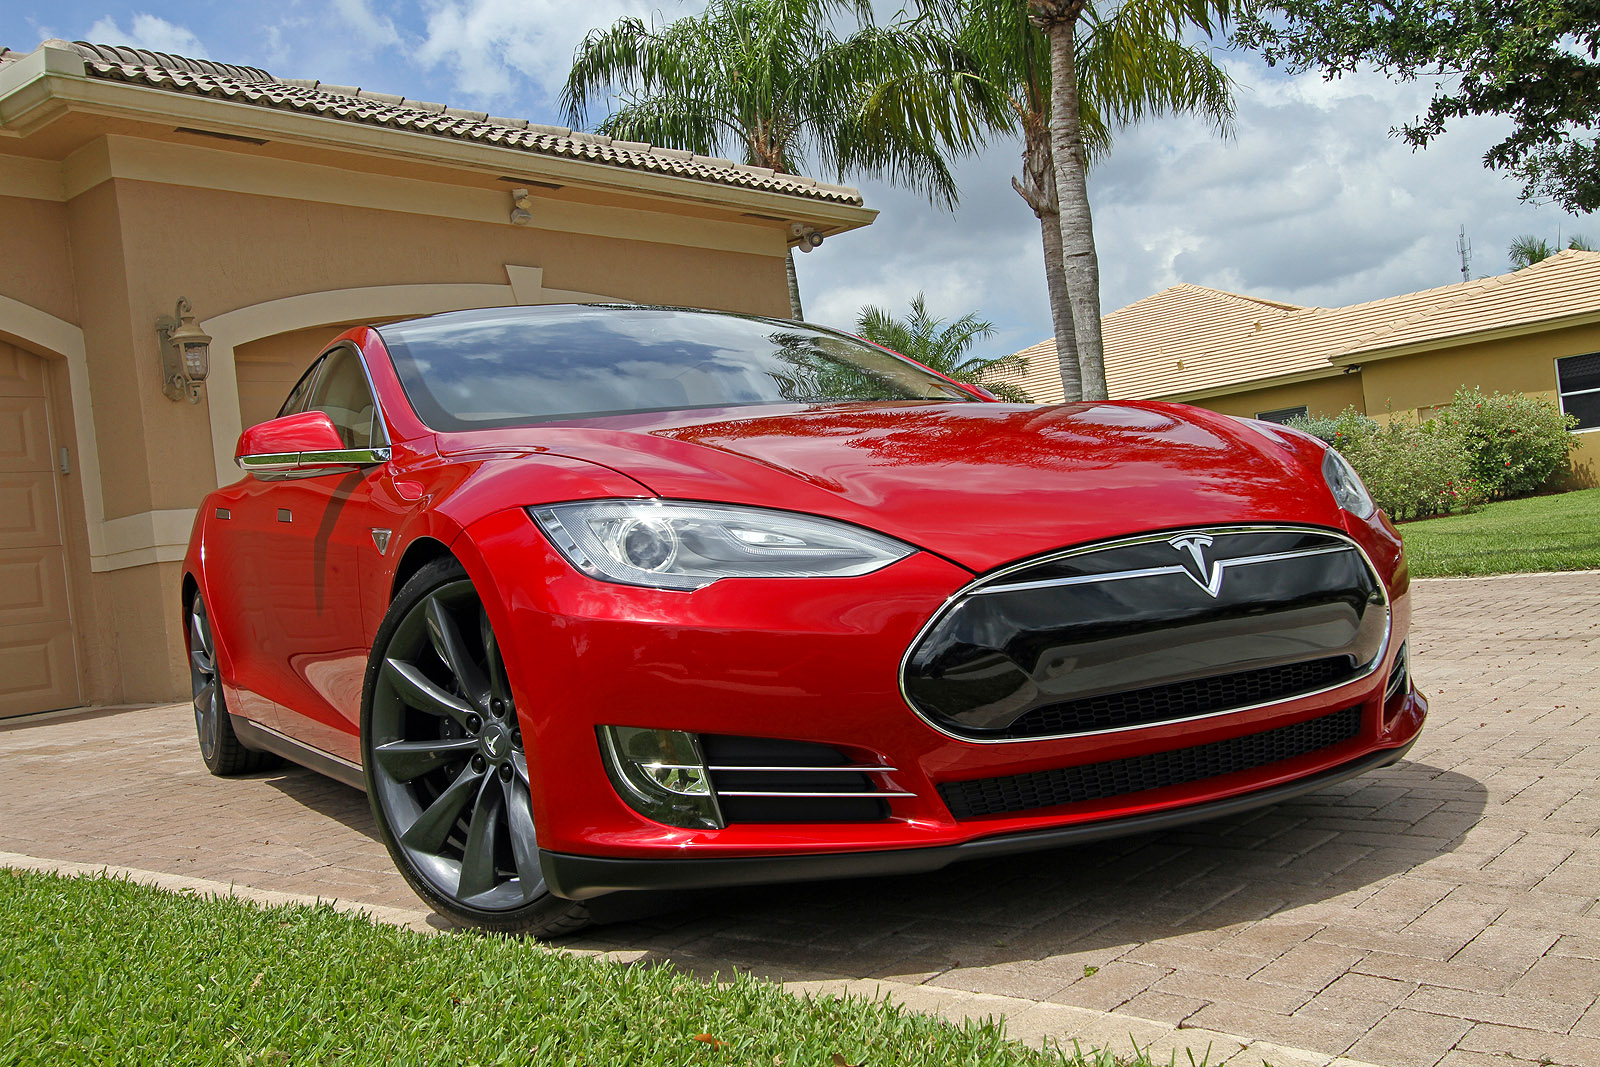 2013-tesla-model-s-p85-multi-coat-red-008.jpg